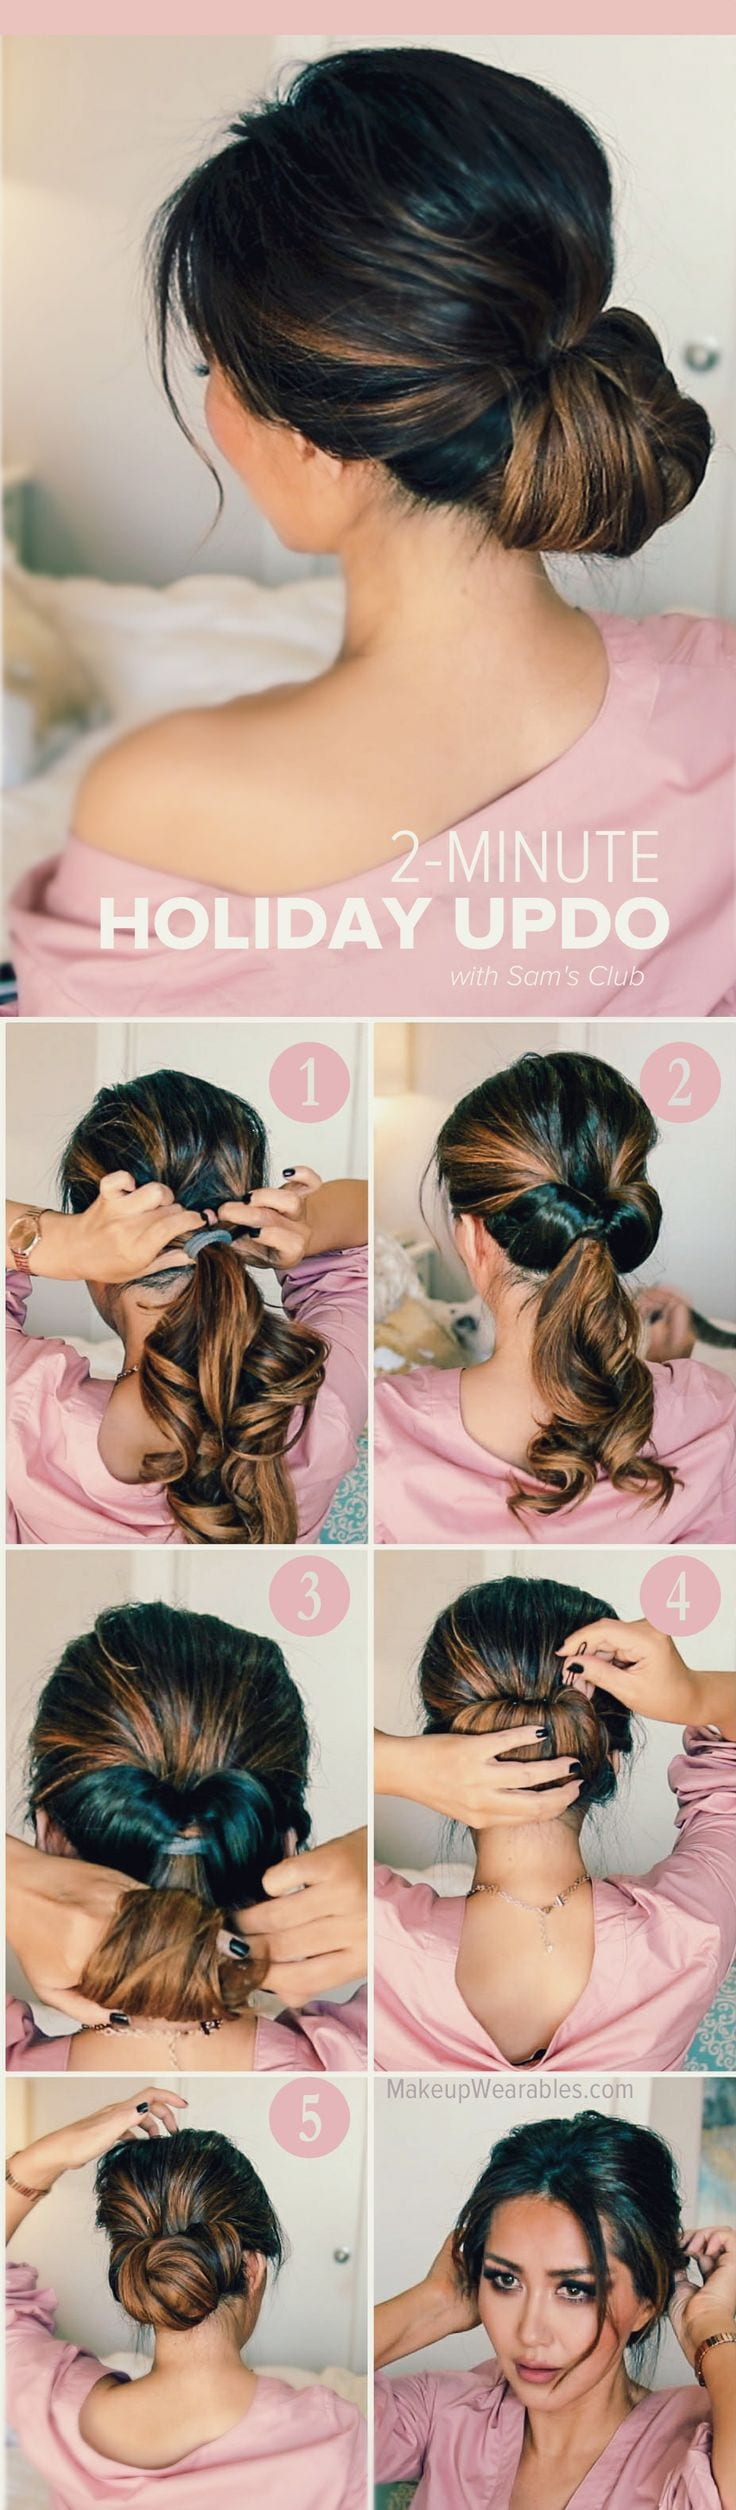 HOW TO: 2-MINUTE ELEGANT HOLIDAY UPDOS Source by Sheilavwaes   …